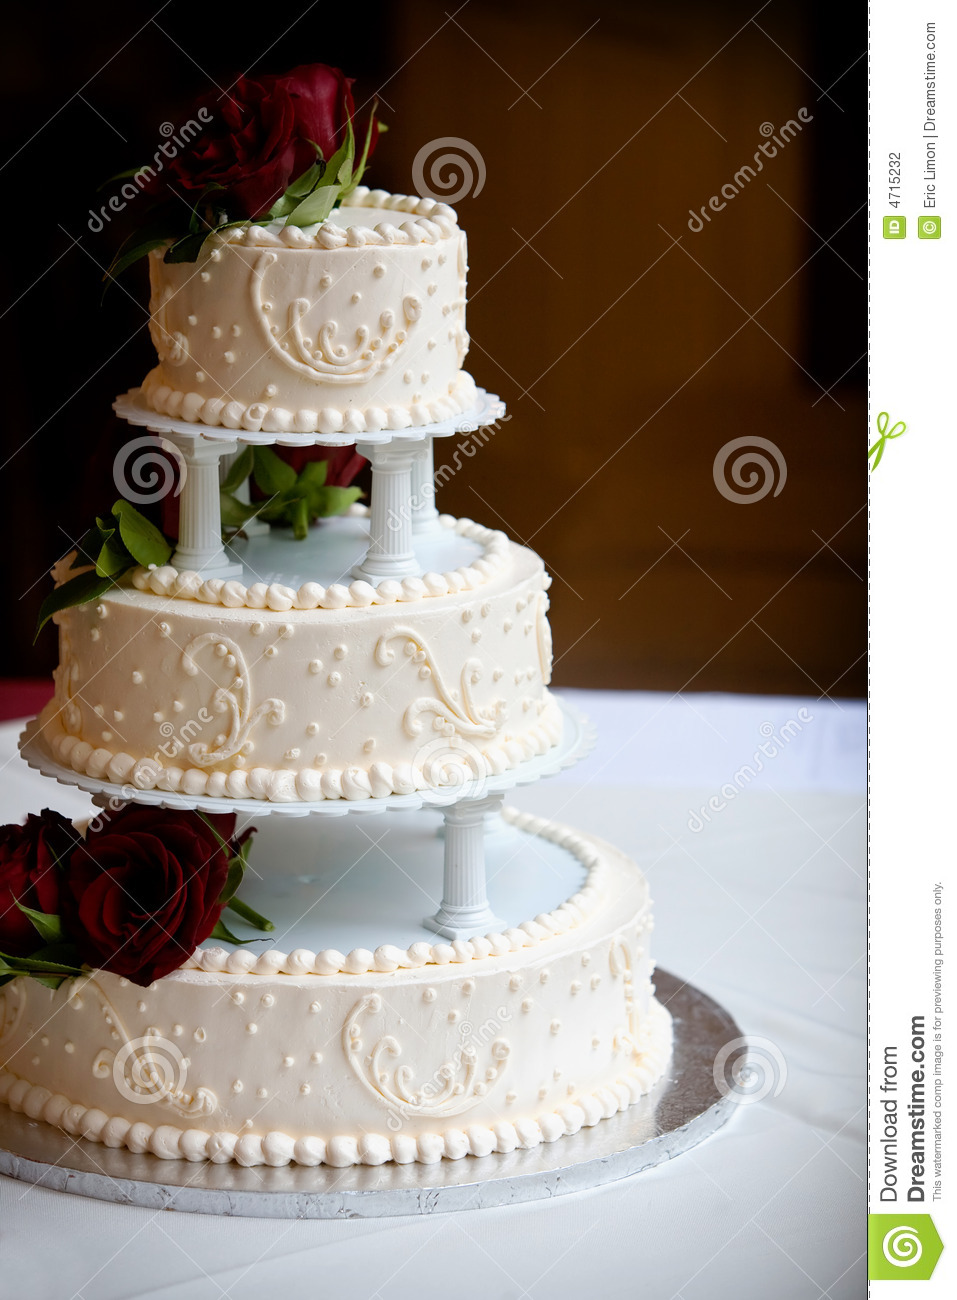 Three Tear Wedding Cakes.Wedding Cake With Three Tiers Stock Photo Image Of Bridal